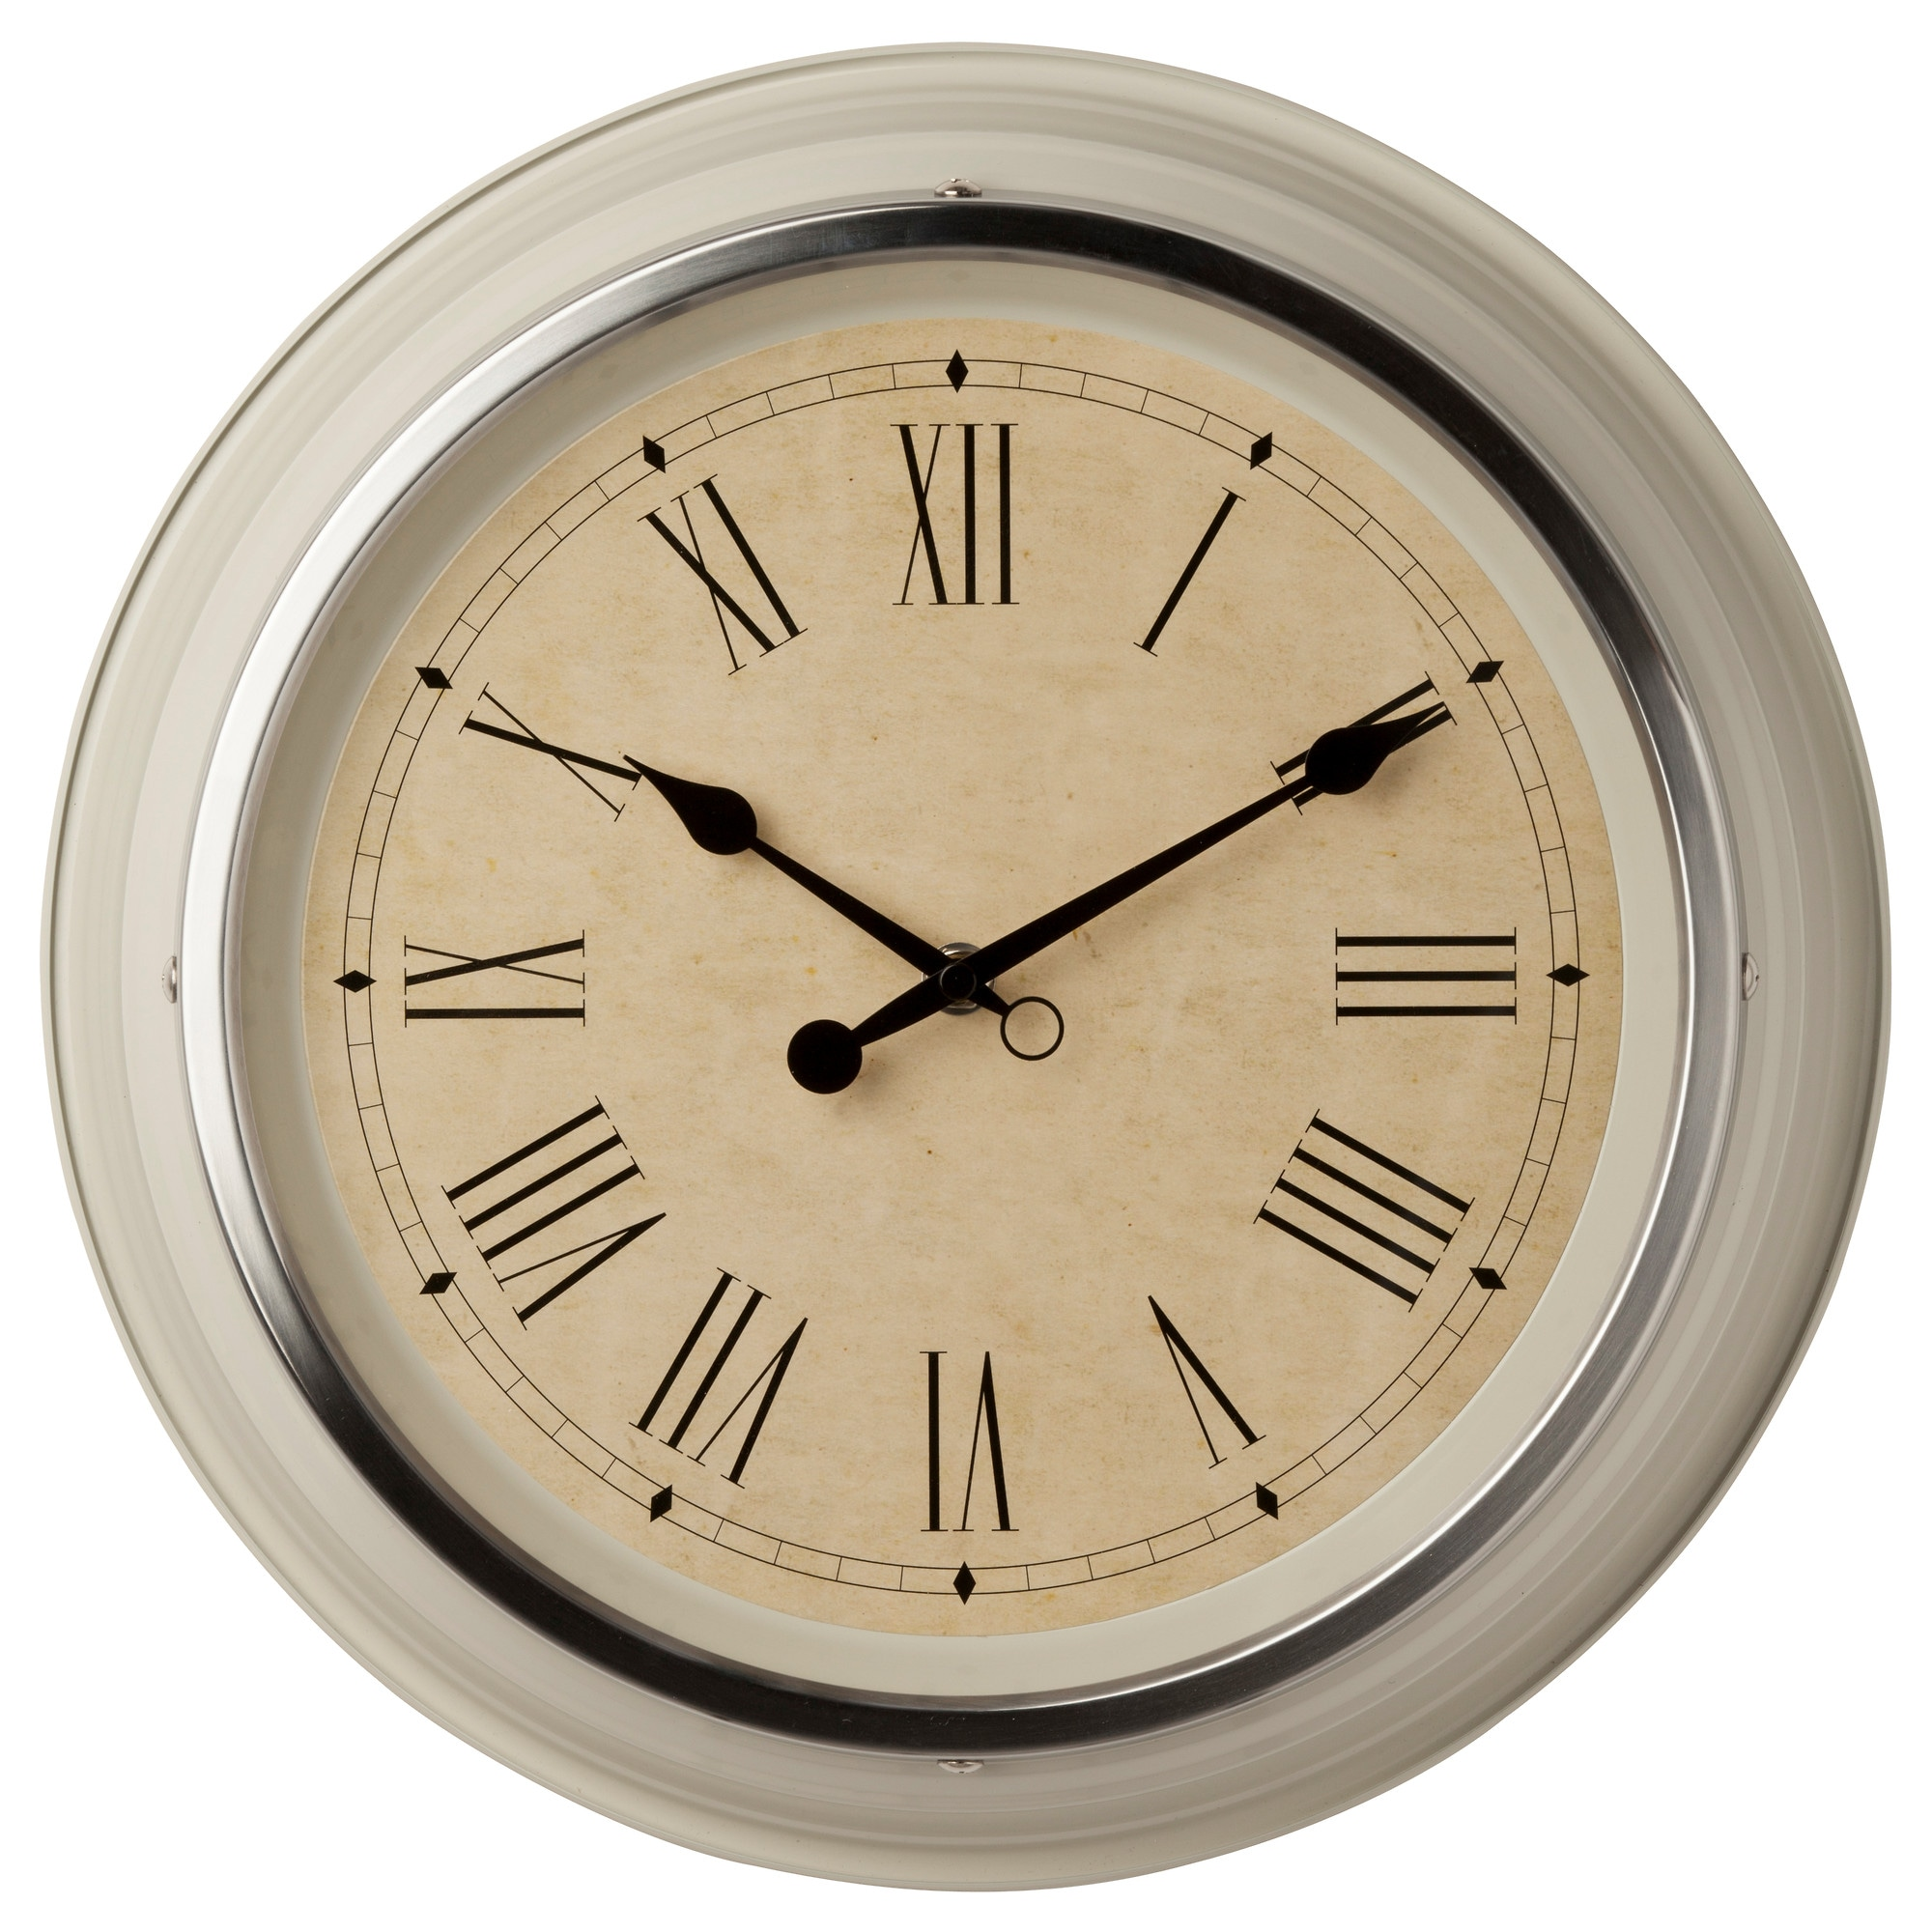 Wall clocks table clocks ikea skovel wall clock beige diameter 13 amipublicfo Image collections